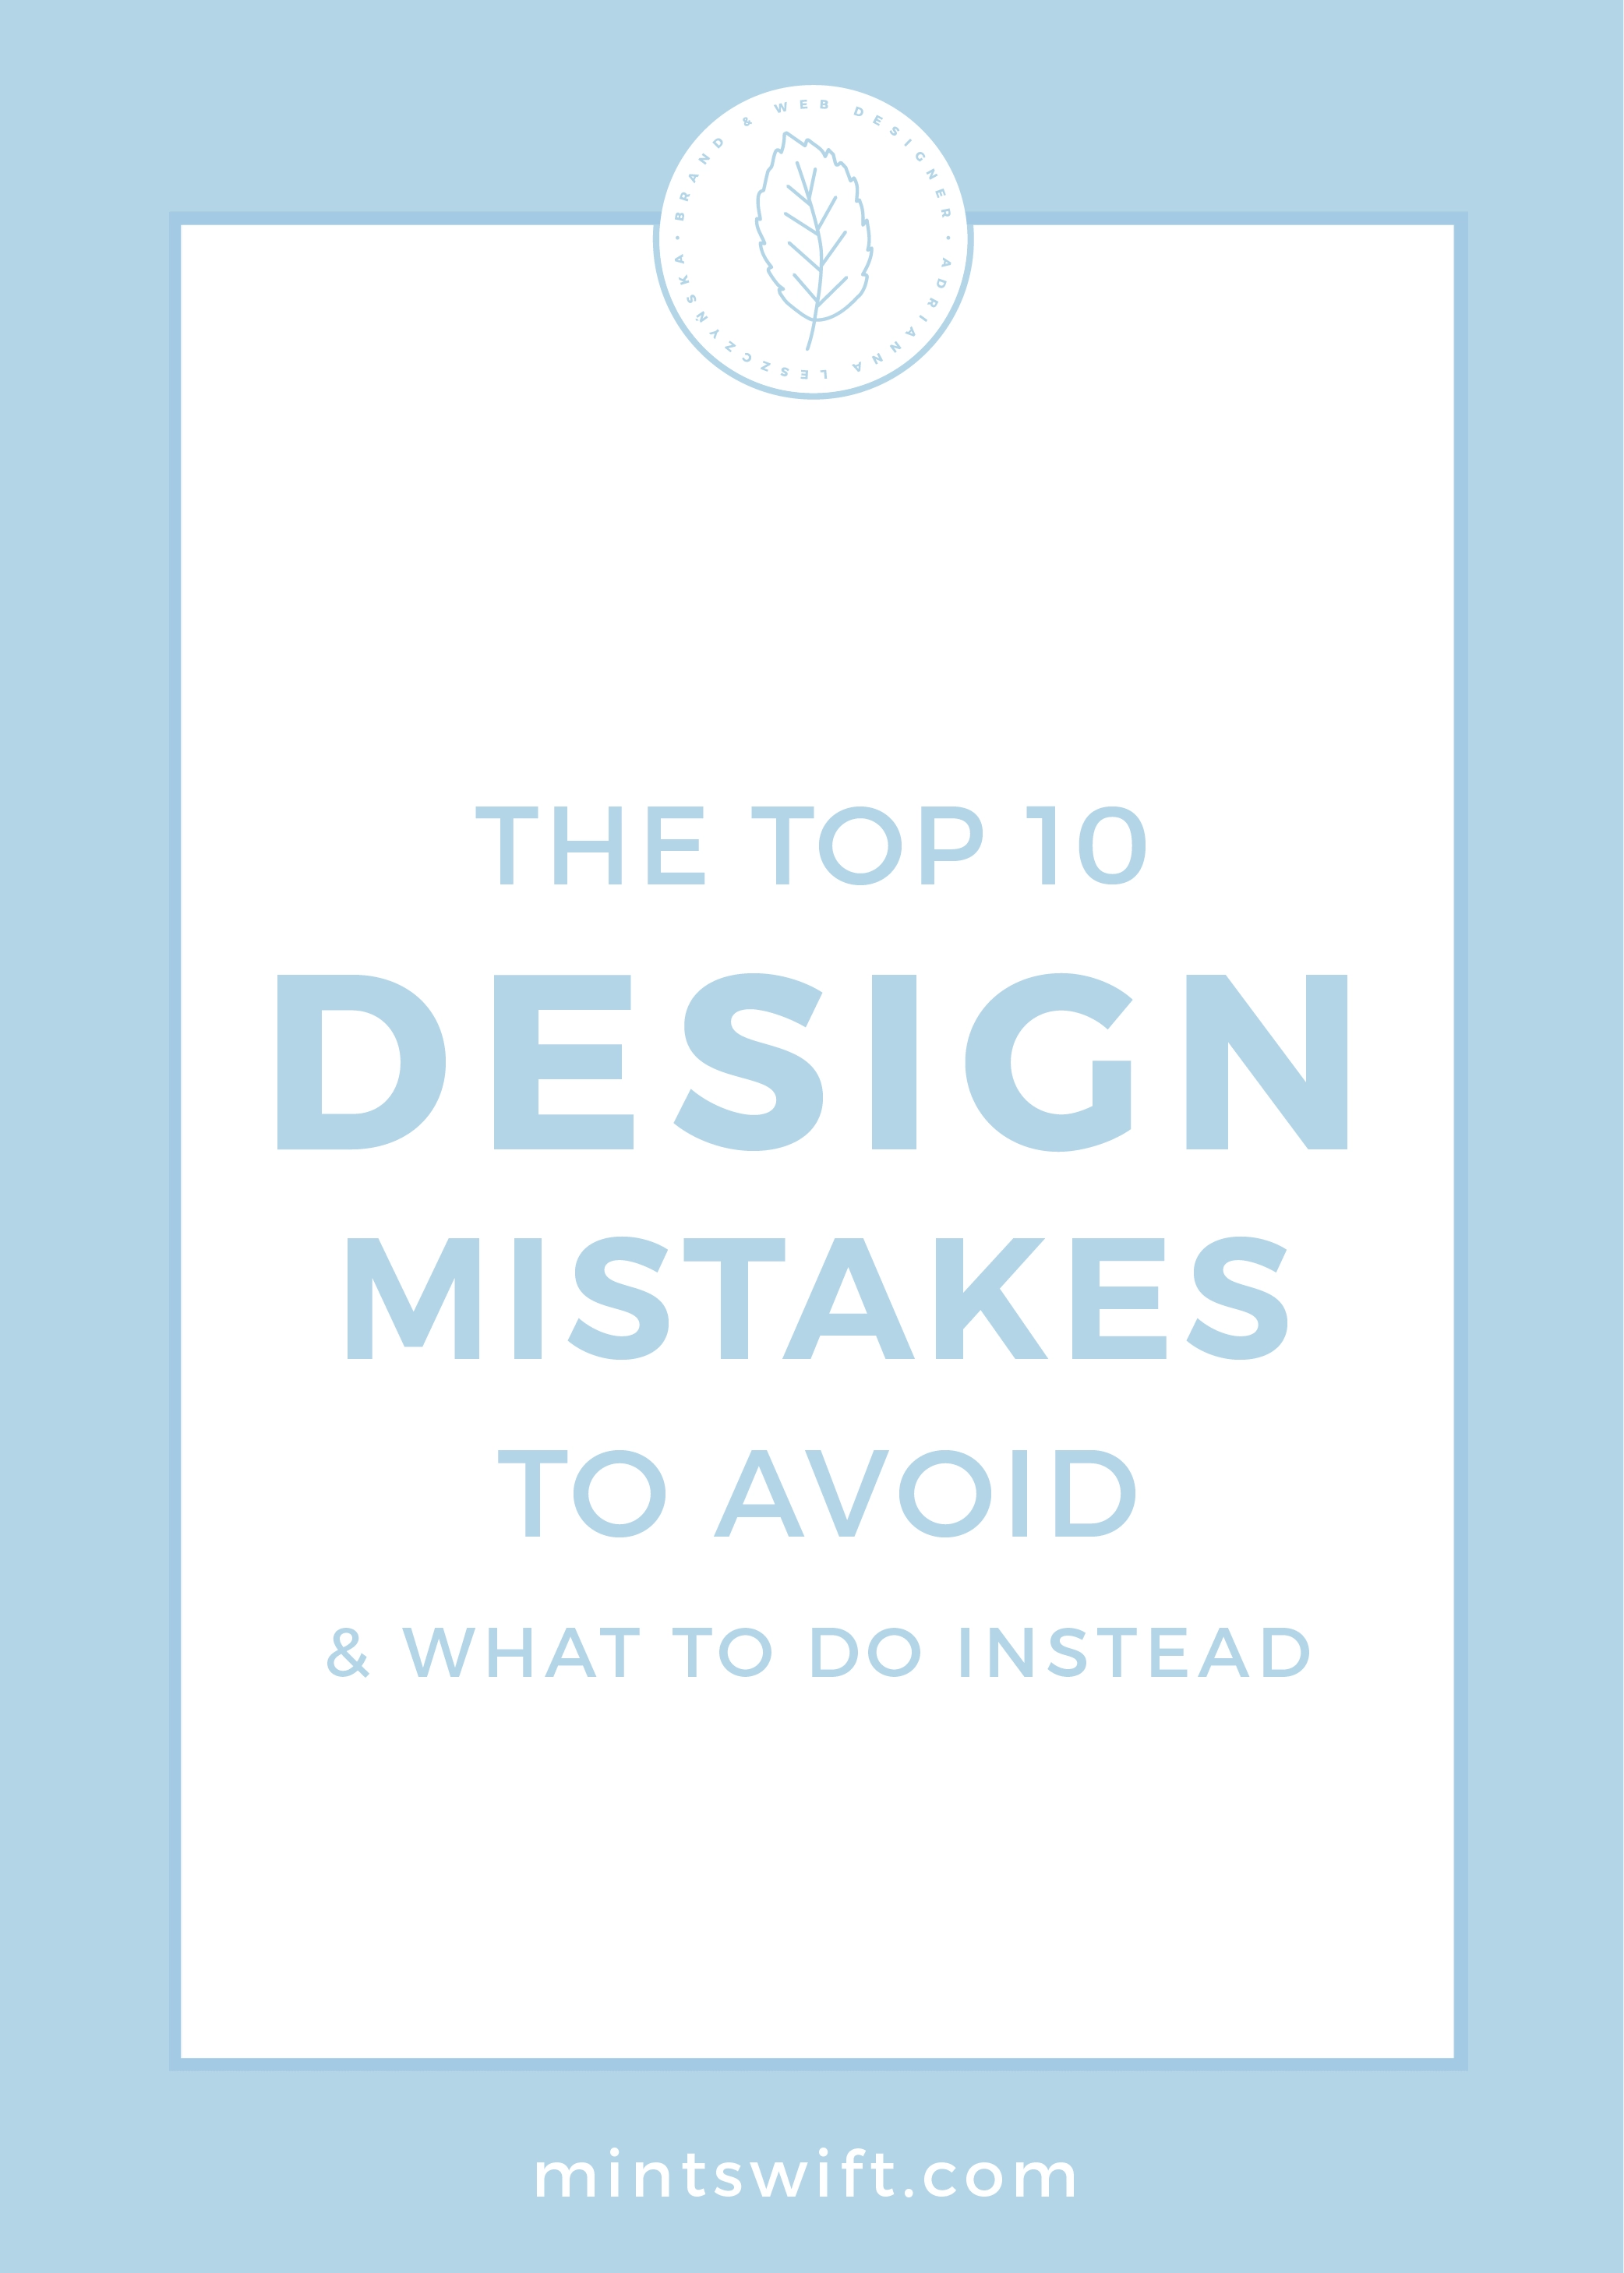 The Top 10 Design Mistakes to Avoid And What to Do Instead by MintSwift